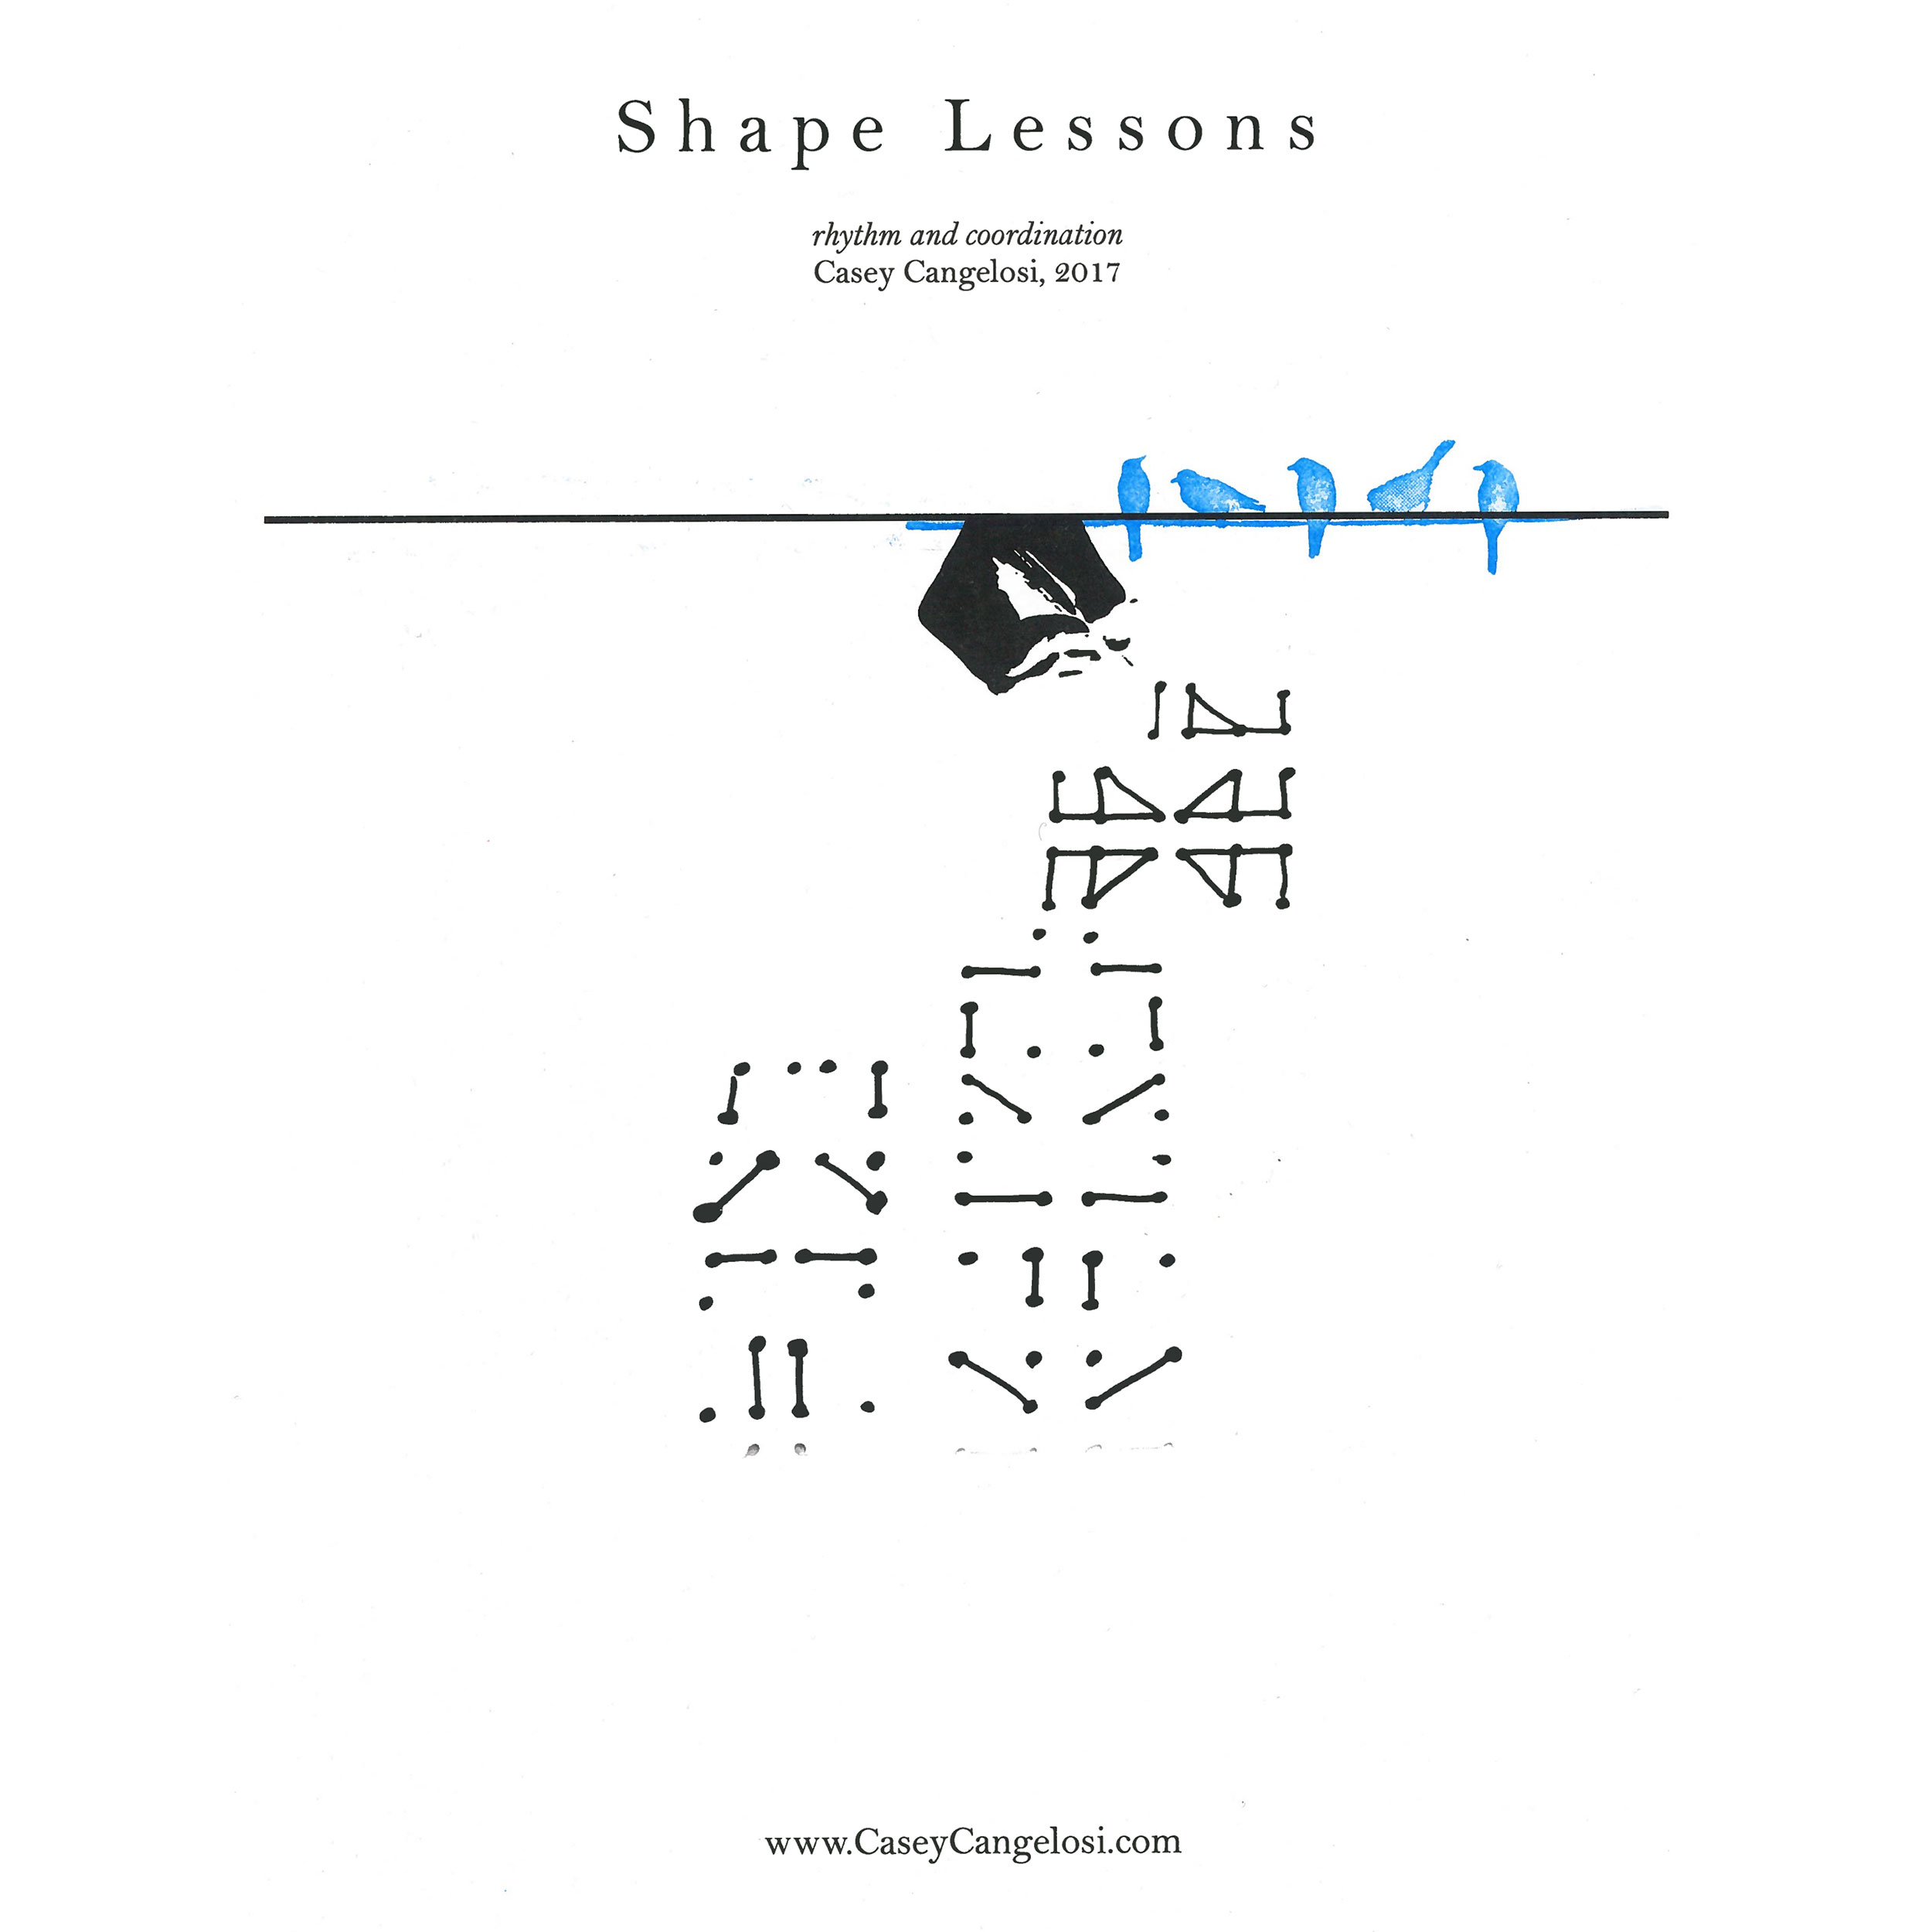 Shape Lessons by Casey Cangelosi